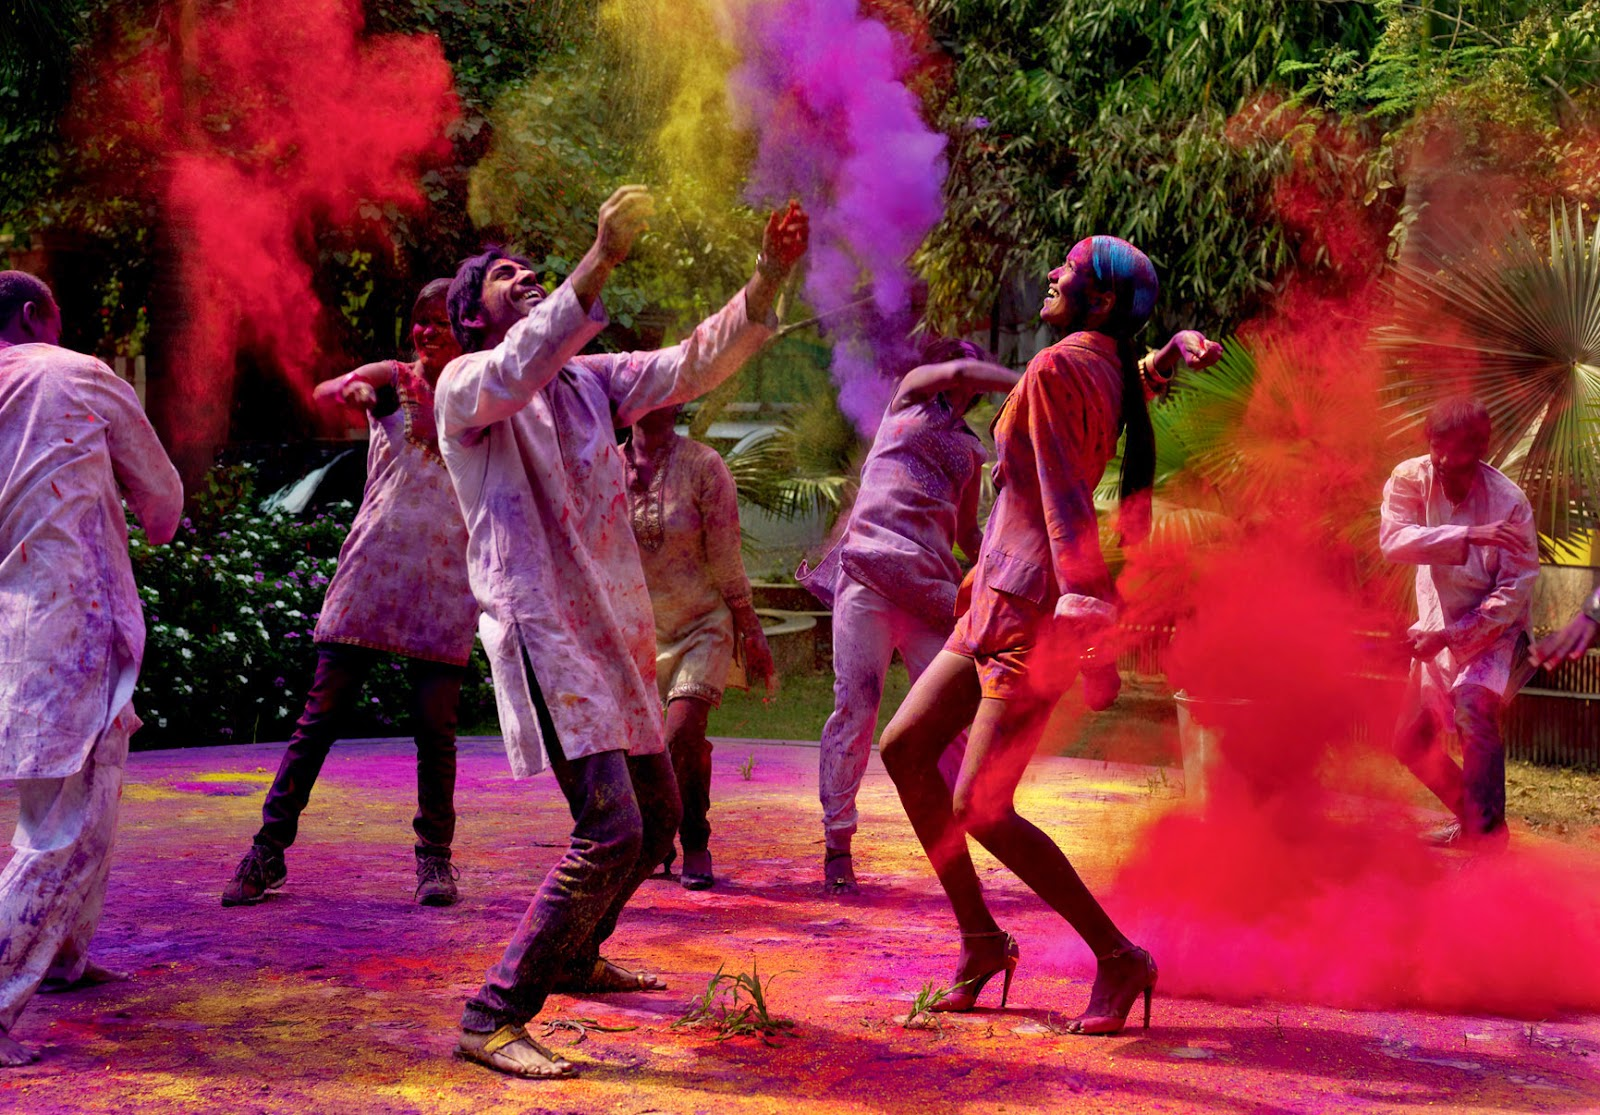 Aarti 3d Name Wallpaper Boys And Girls Celebrating Holi Festival Images Hd